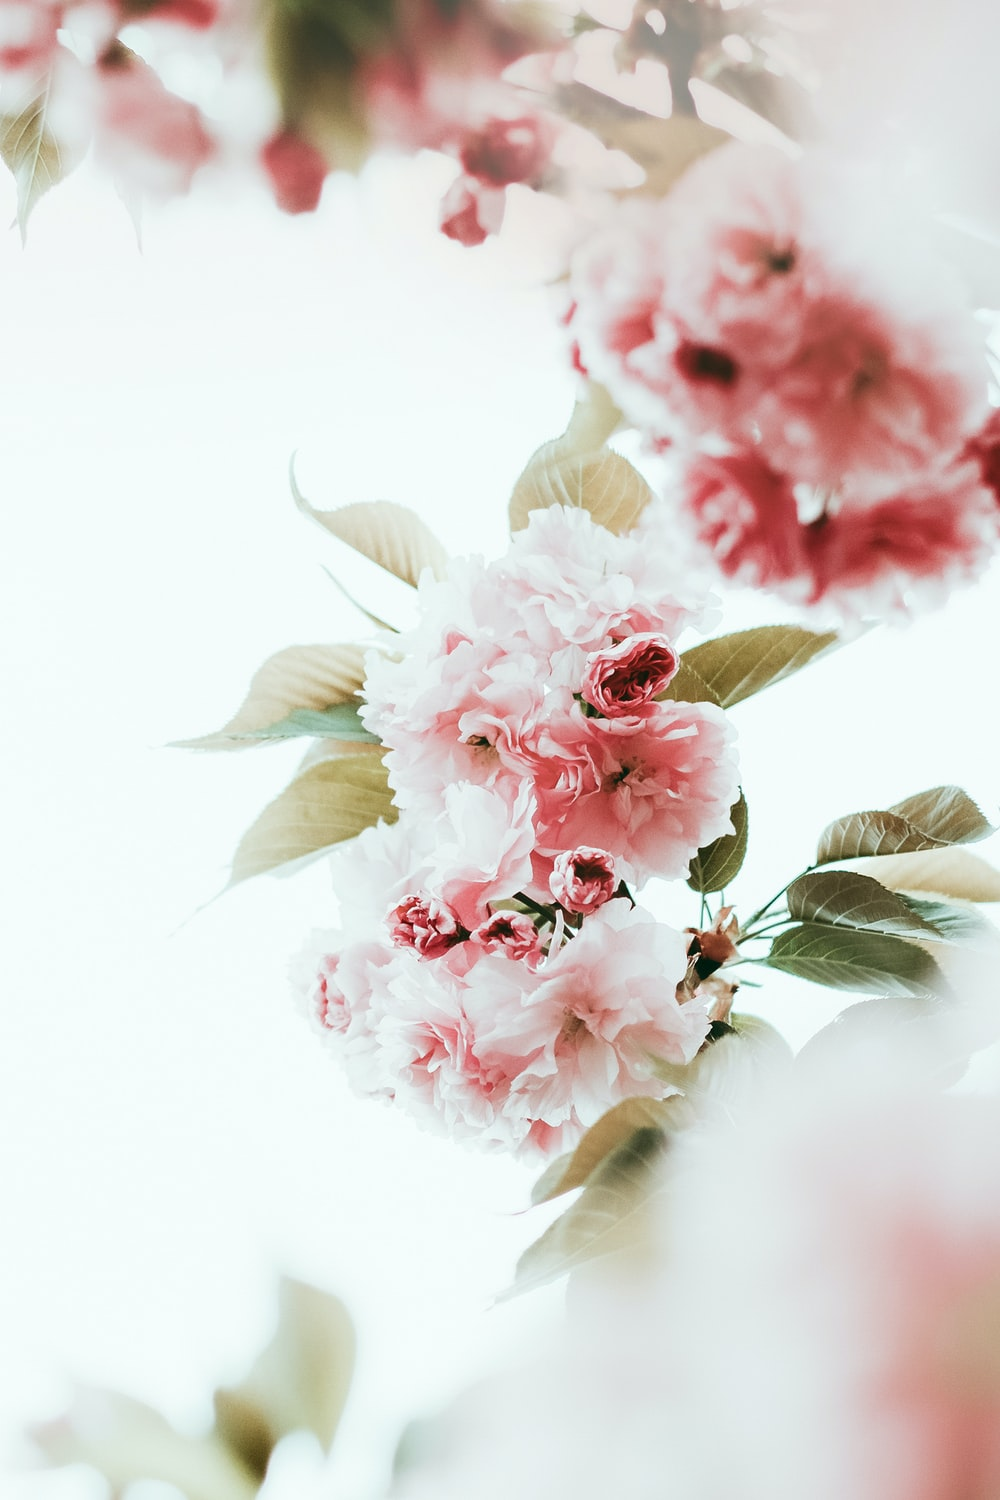 white and pink flower on white surface